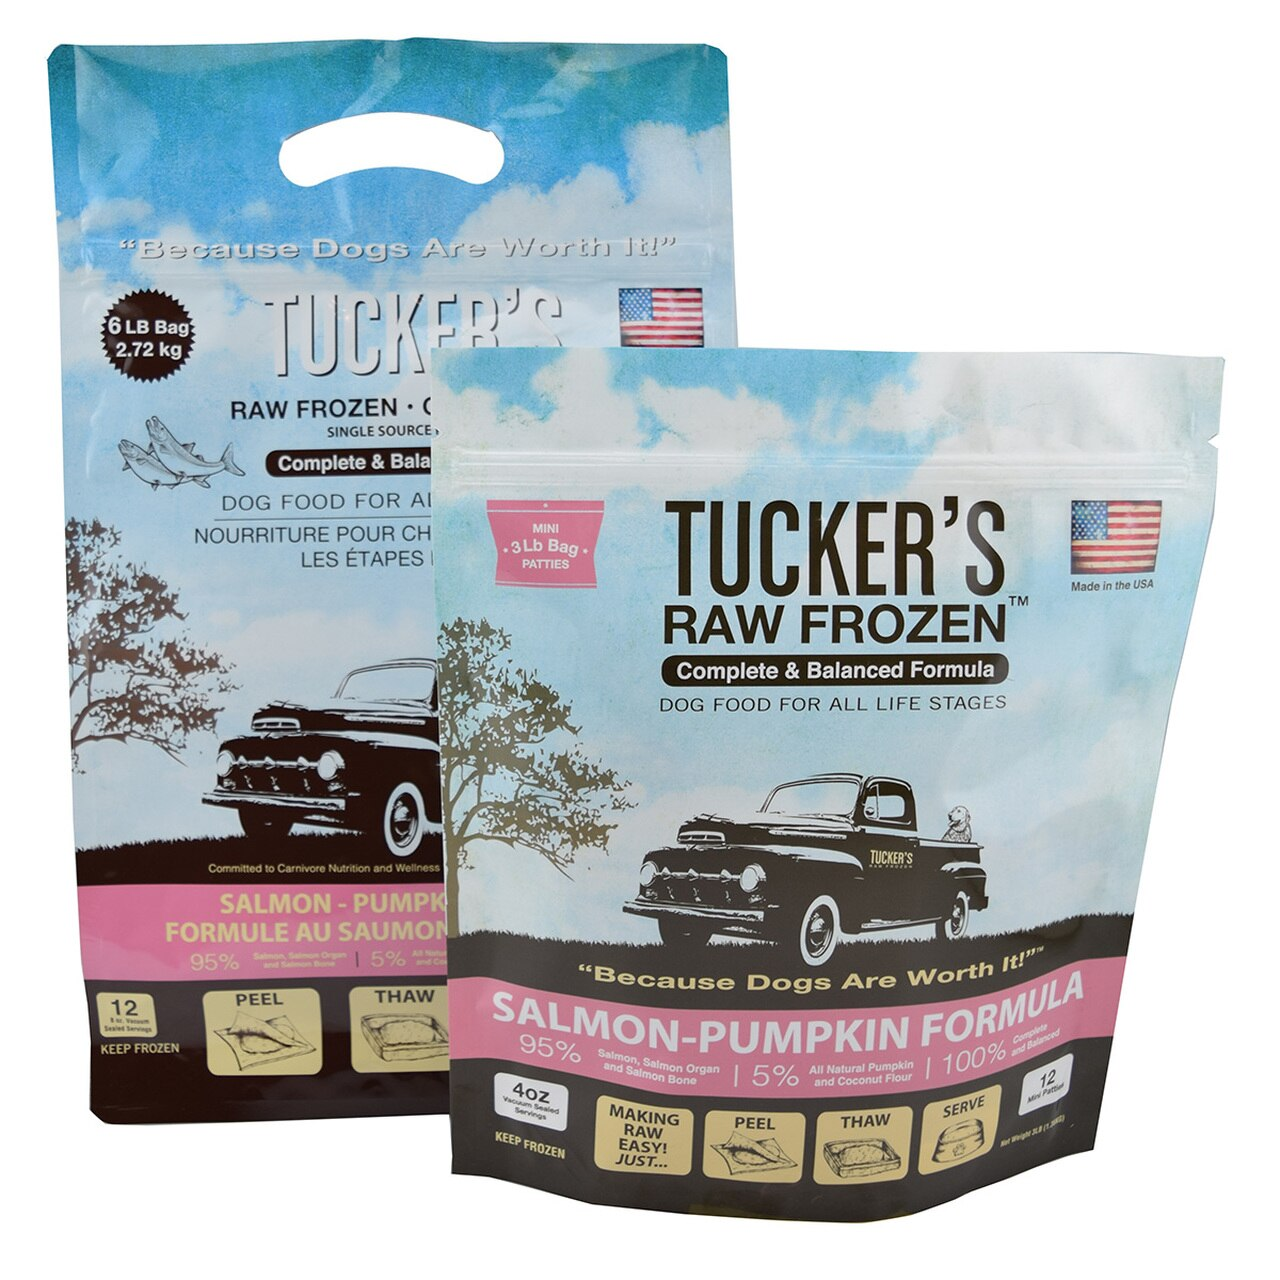 Tucker's Raw Frozen Grain-Free Salmon & Pumpkin Formula Raw Frozen Dog Food, 3-lb